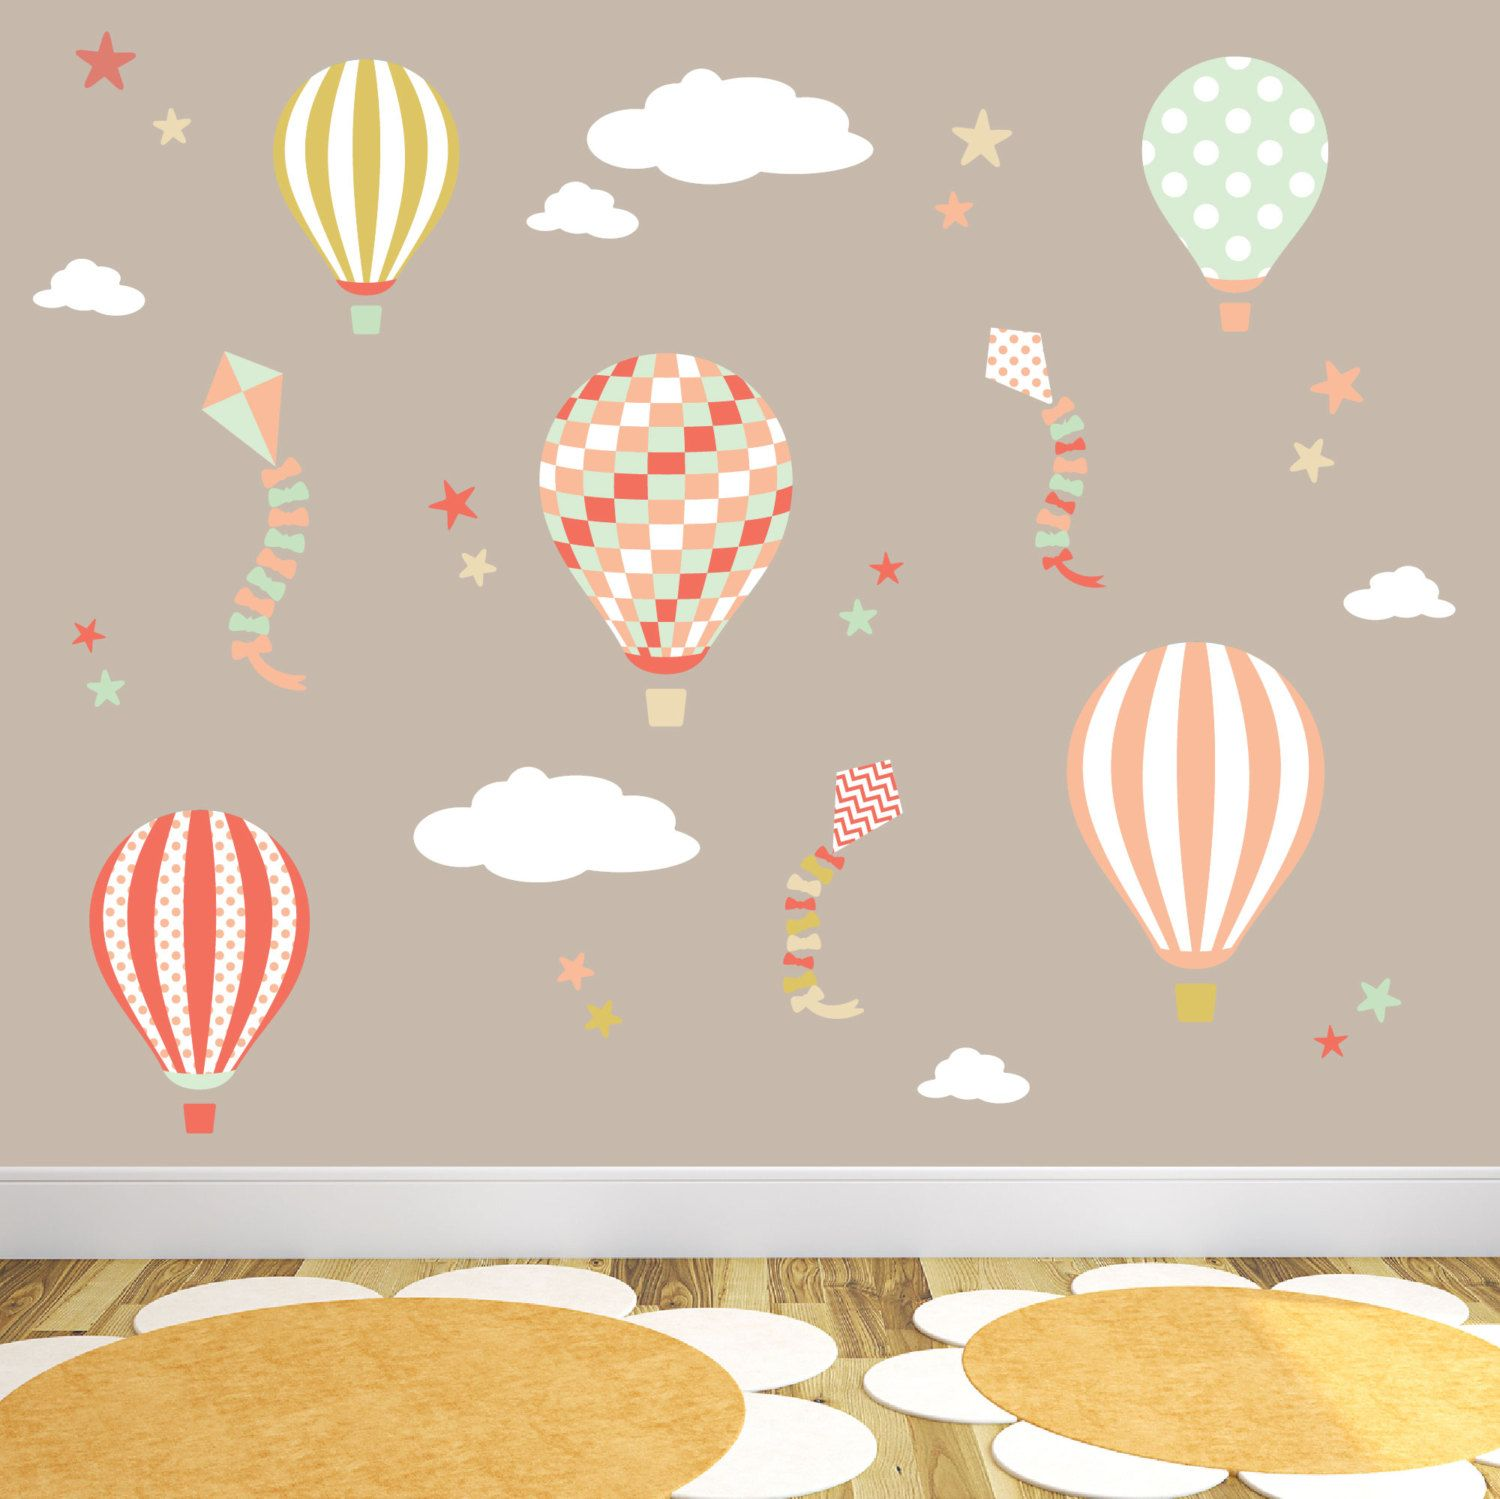 Hot Air Balloon Wall Decal Kites And Stars Wall Stickers Gender - Nursery wall decals gender neutral